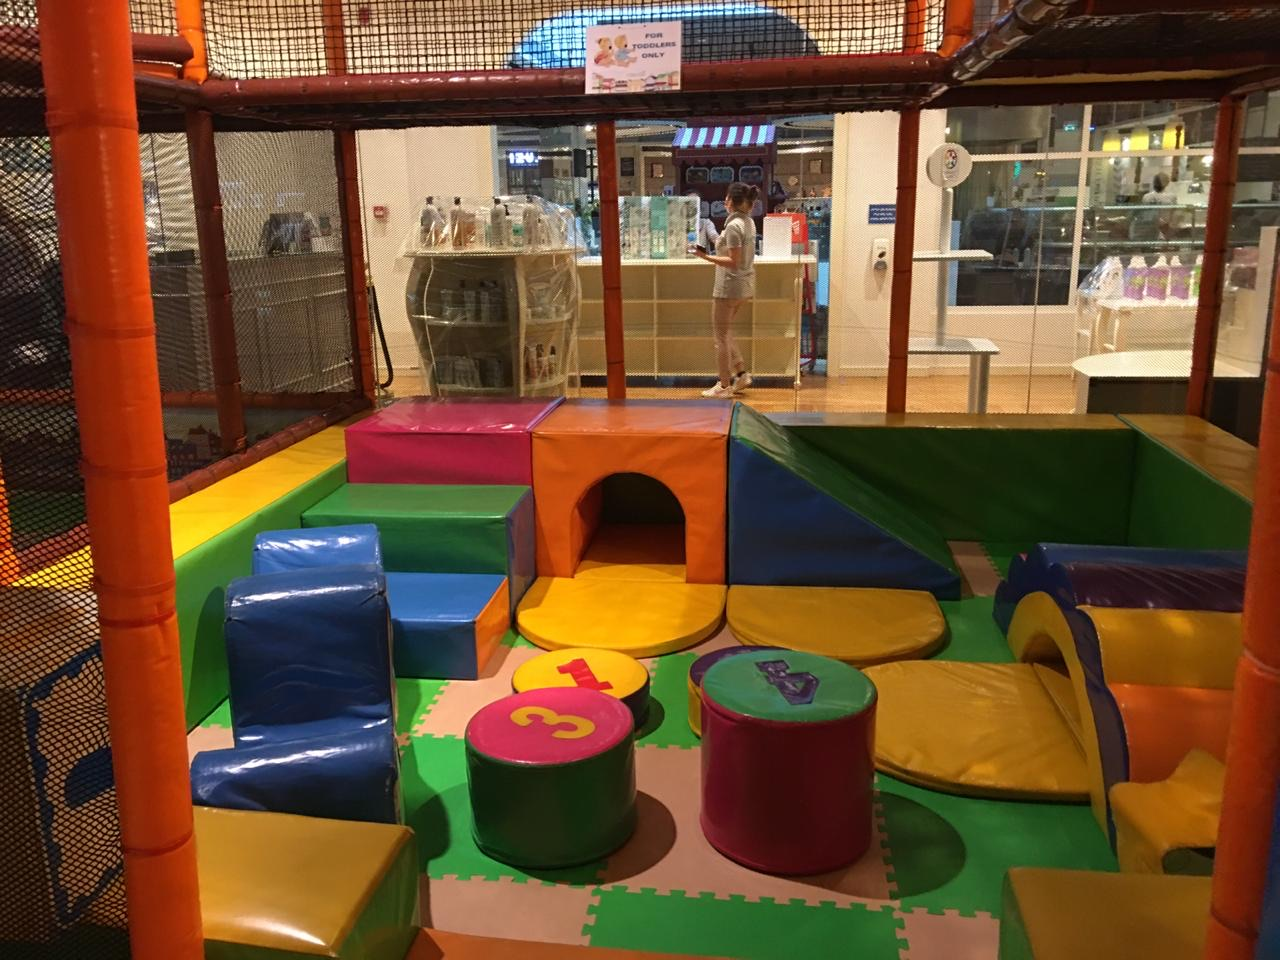 Kids_Play_Area_Equipment_and_Furniture__710